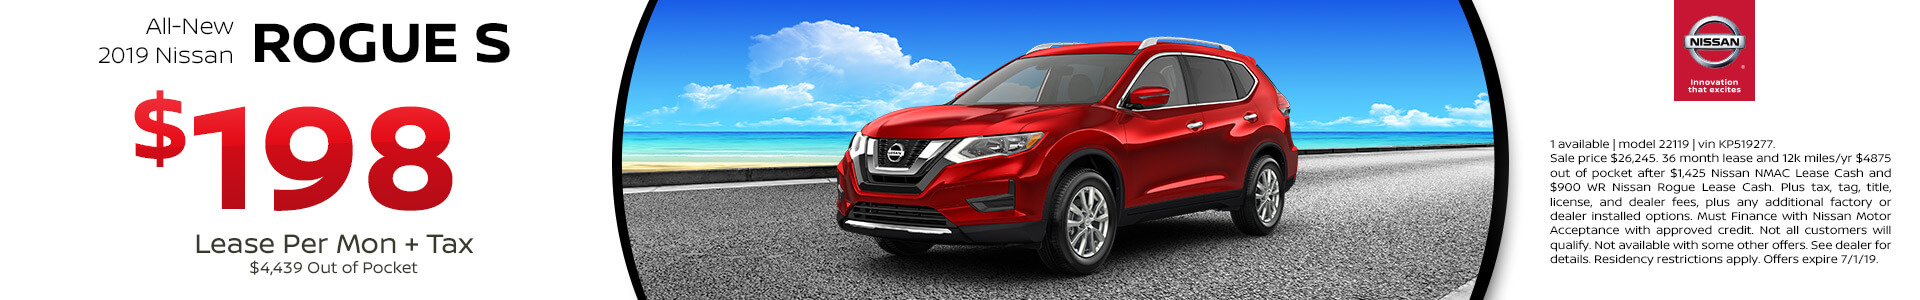 2019 Nissan Rogue Lease for $198